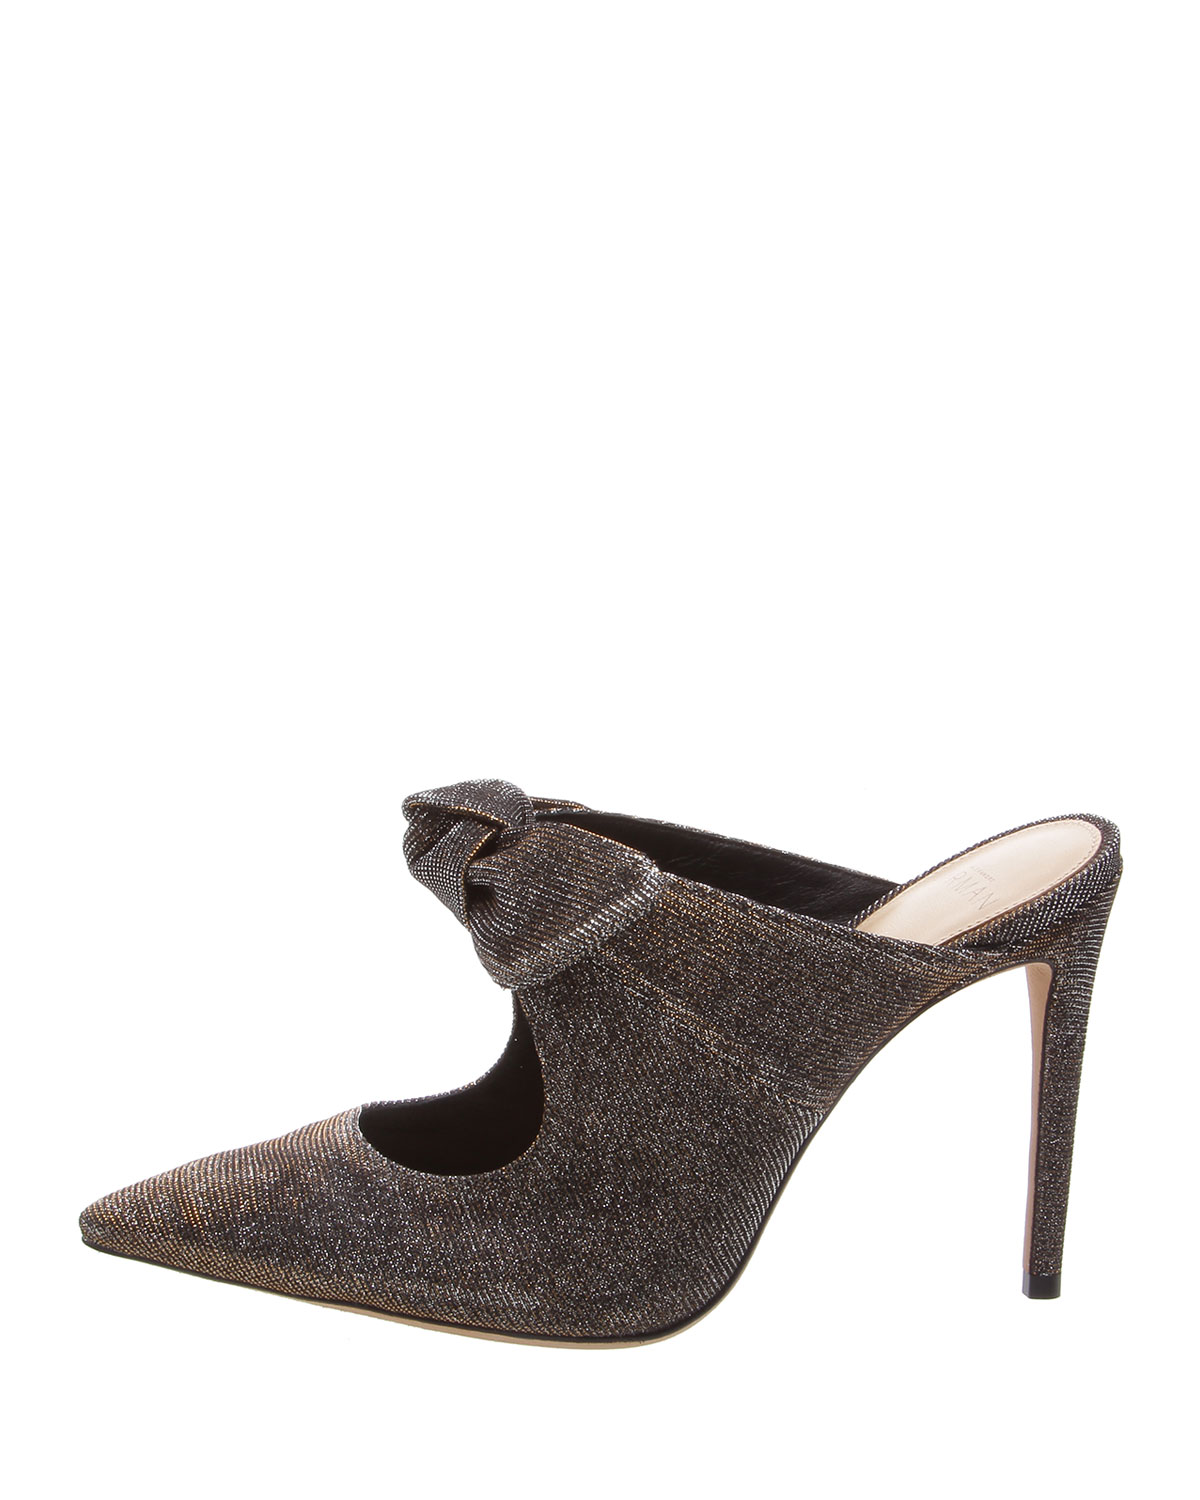 ALEXANDRE BIRMAN KNOTTED HIGH POINTED 100MM MULES, SILVER